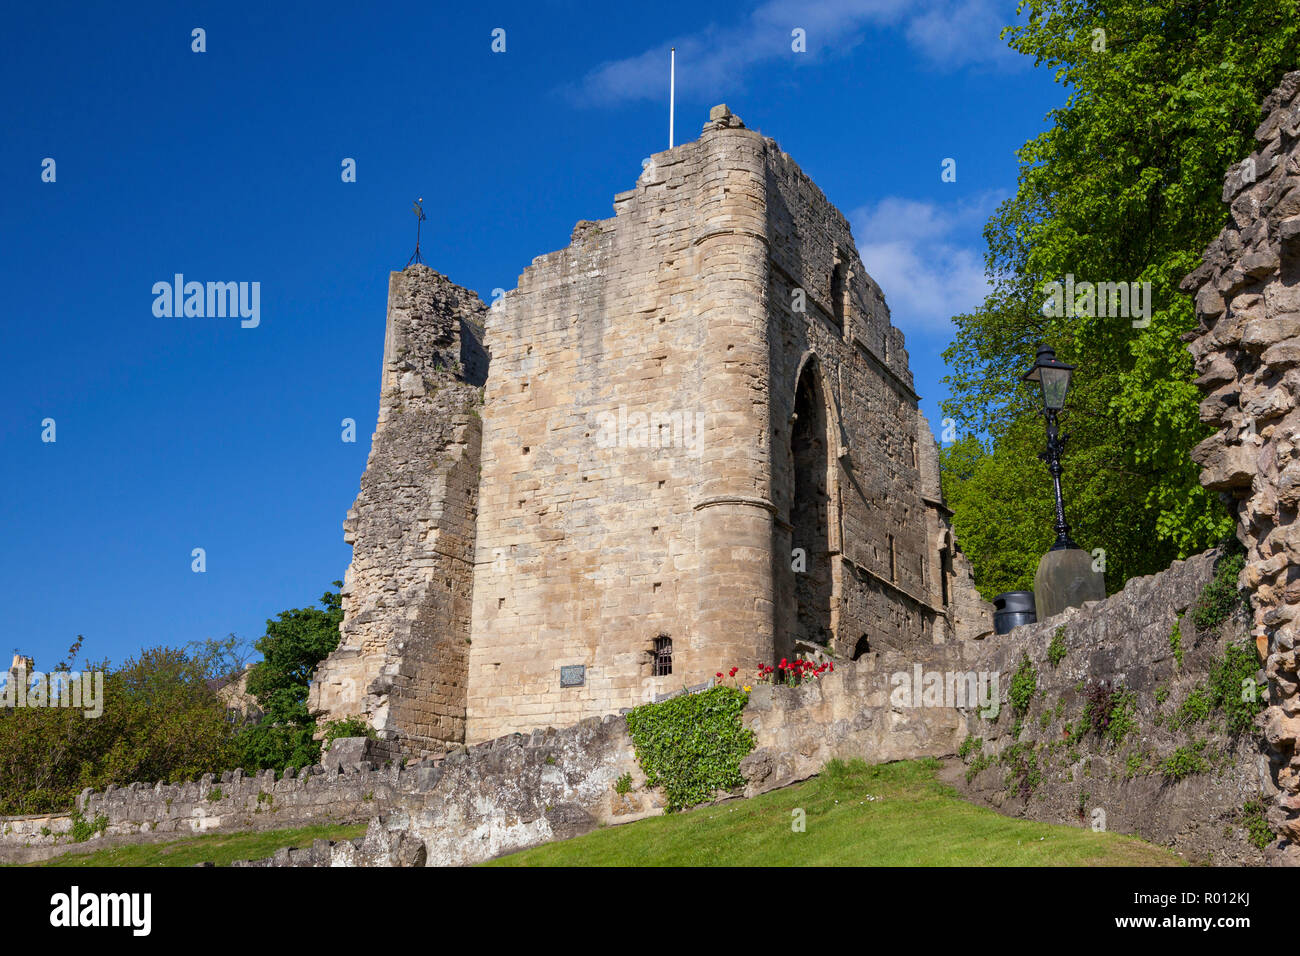 Summer view of the ruined stone keep of Knaresborough Castle, once a medieval fortress, now a popular visitor attraction in this Yorkshire town - Stock Image